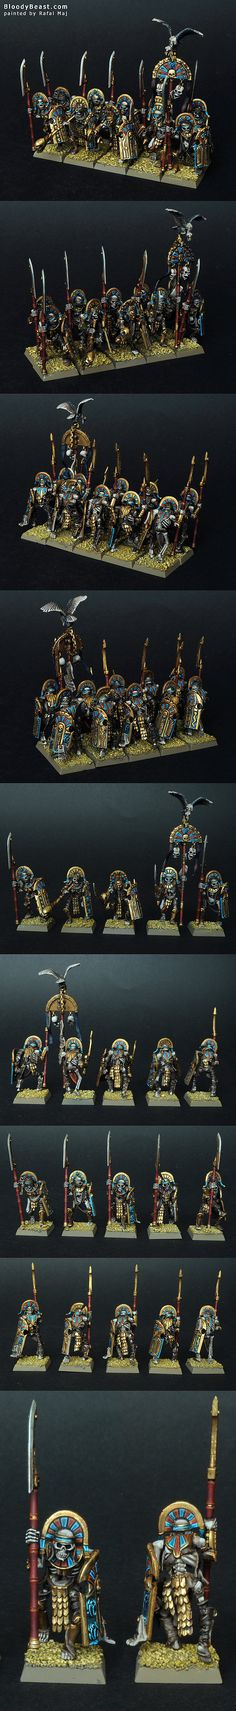 Tomb Kings Tomb Guards with Halberds and Shields